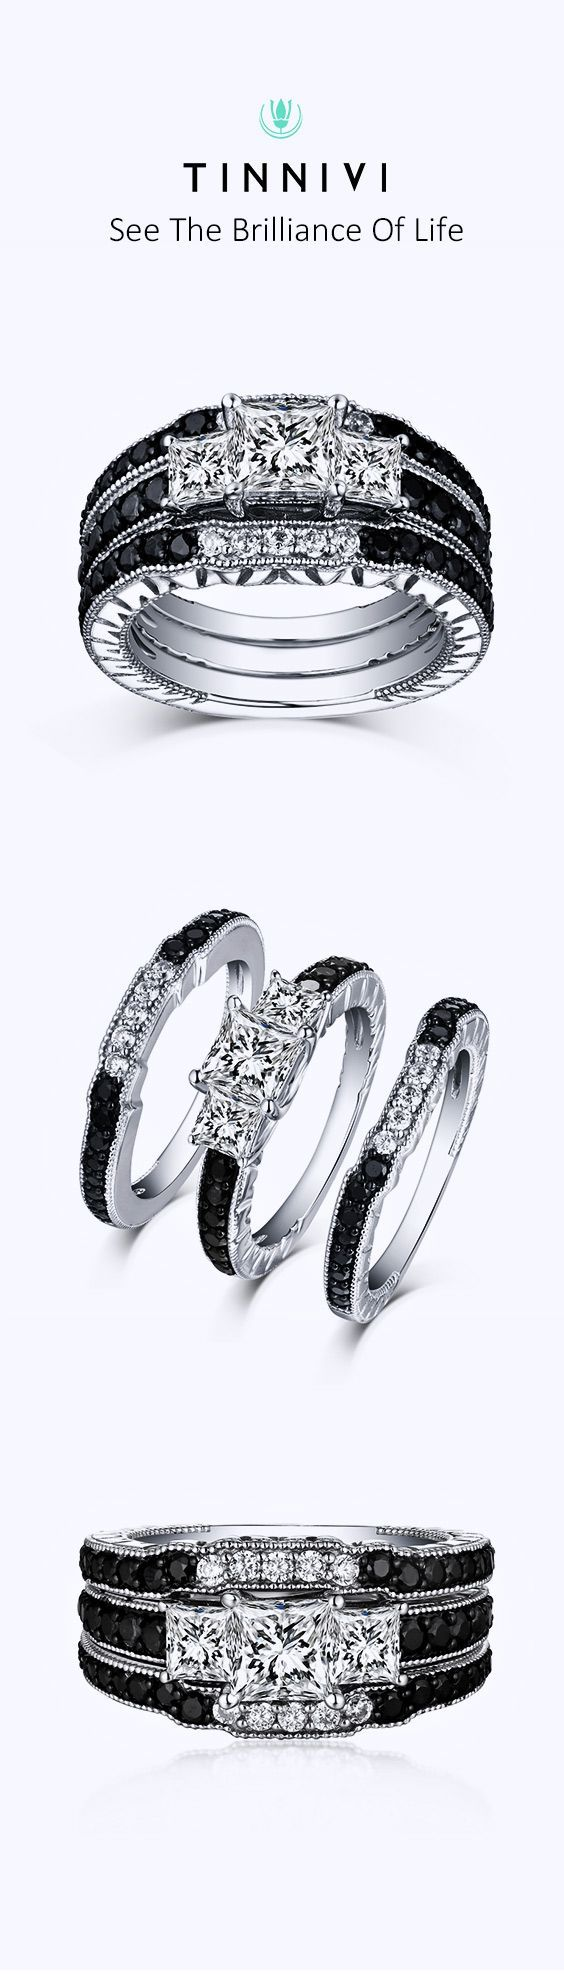 Shop Tinnivi Sterling Sliver Black Diamond Channel 3PC 3 Stone Wedding Ring Set online, Tinnivi Jewelry creates quality fine jewelry at gorgeous prices. Shop now!